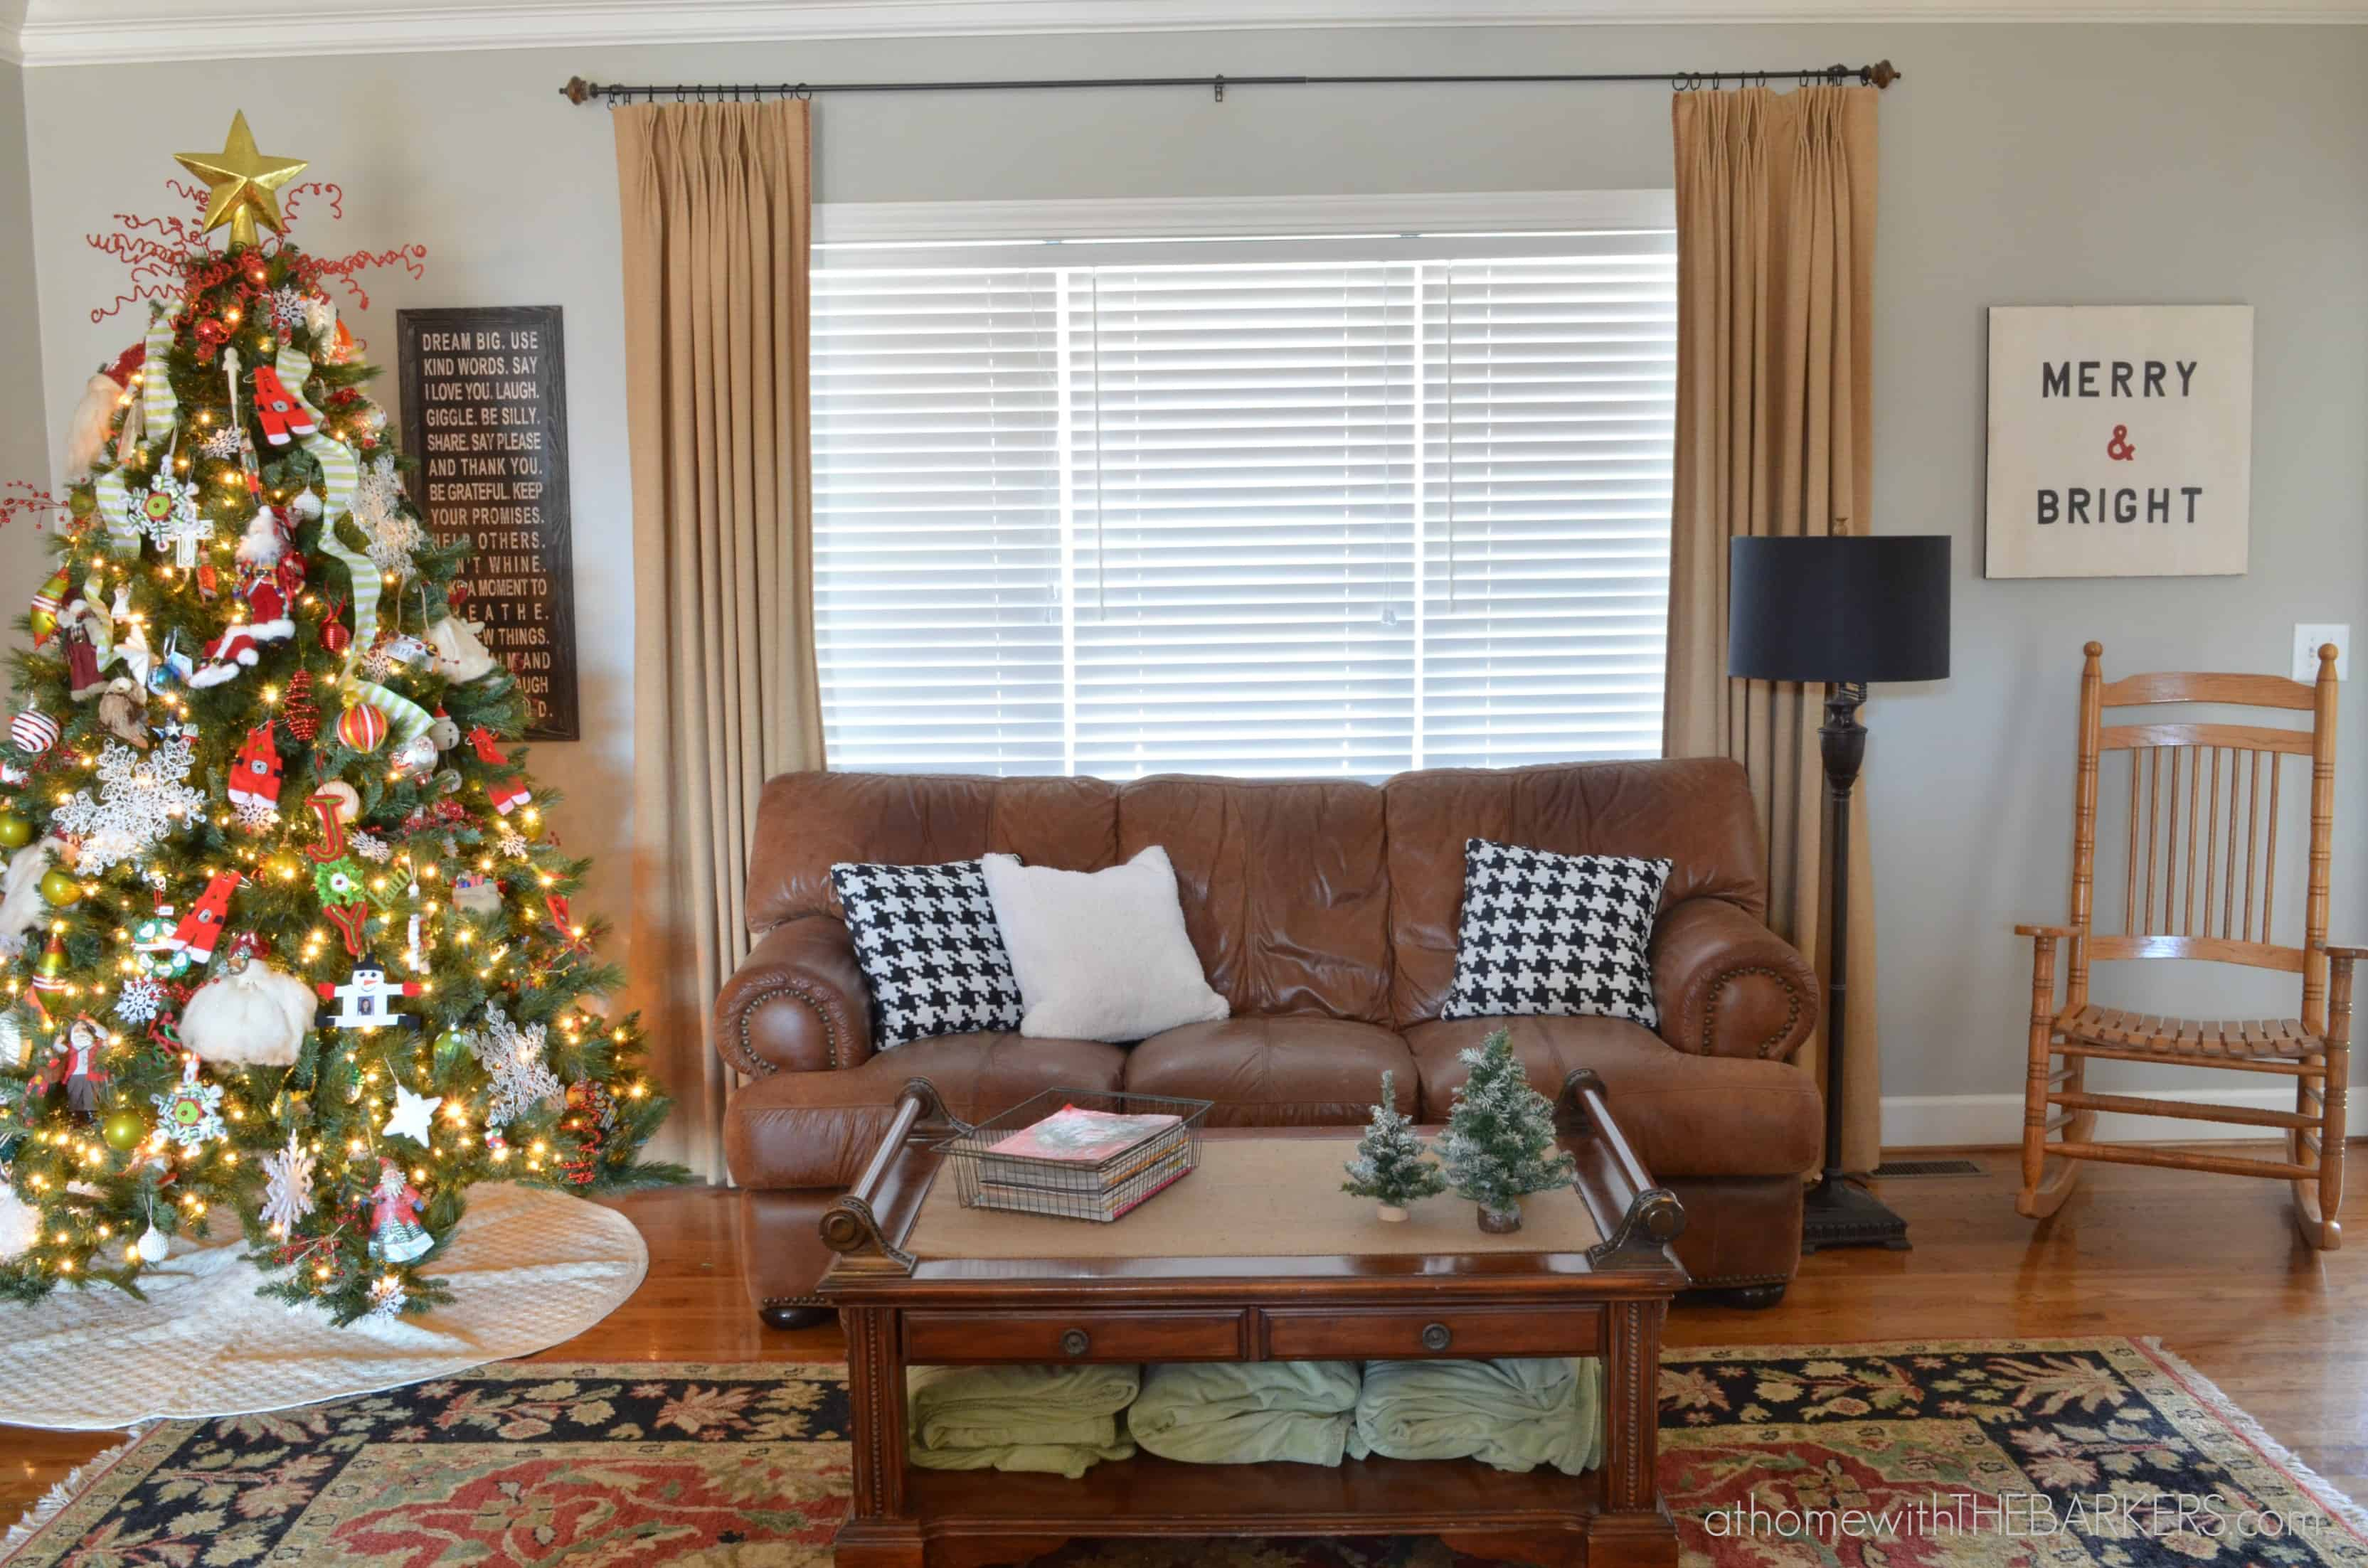 Christmas Tour Living Room At Home with The Barkers